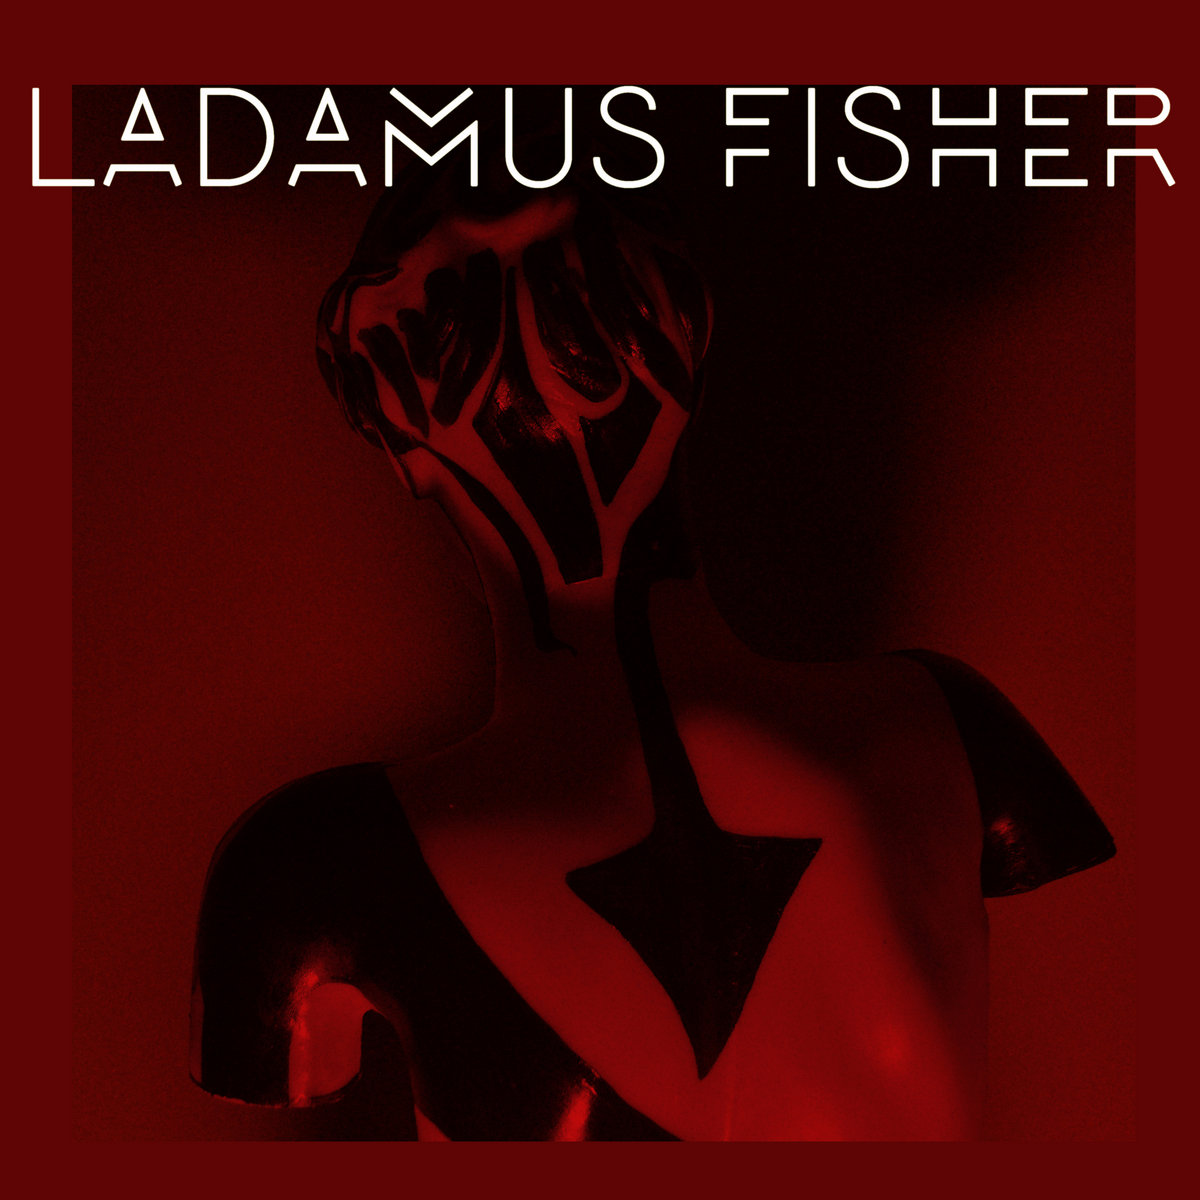 Love Song The Cure Ladamus Fisher